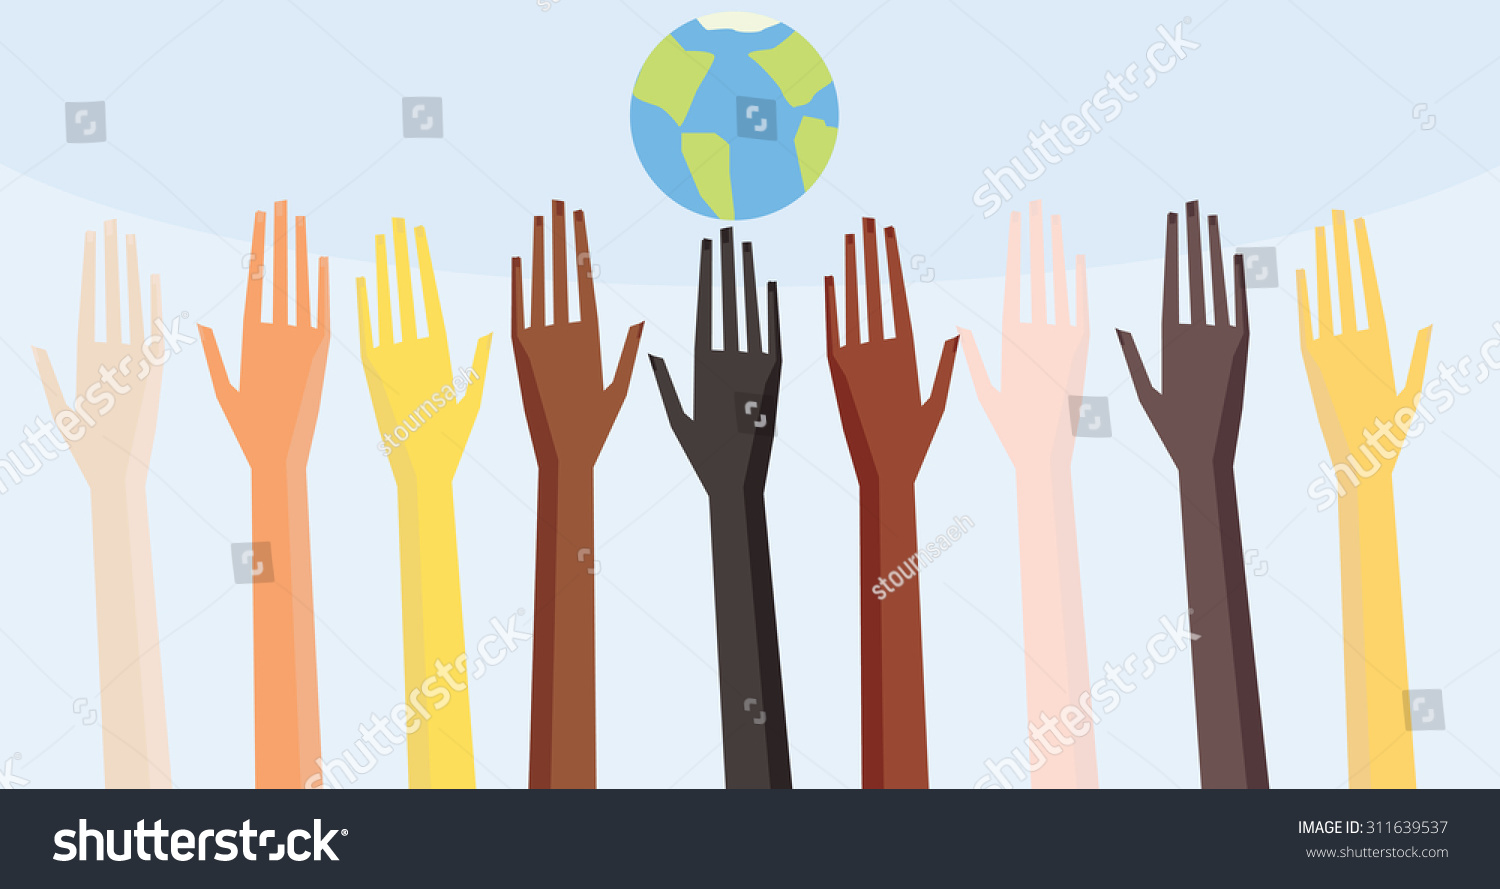 Race Equality Symbol Illustration of a people's hands with different ...